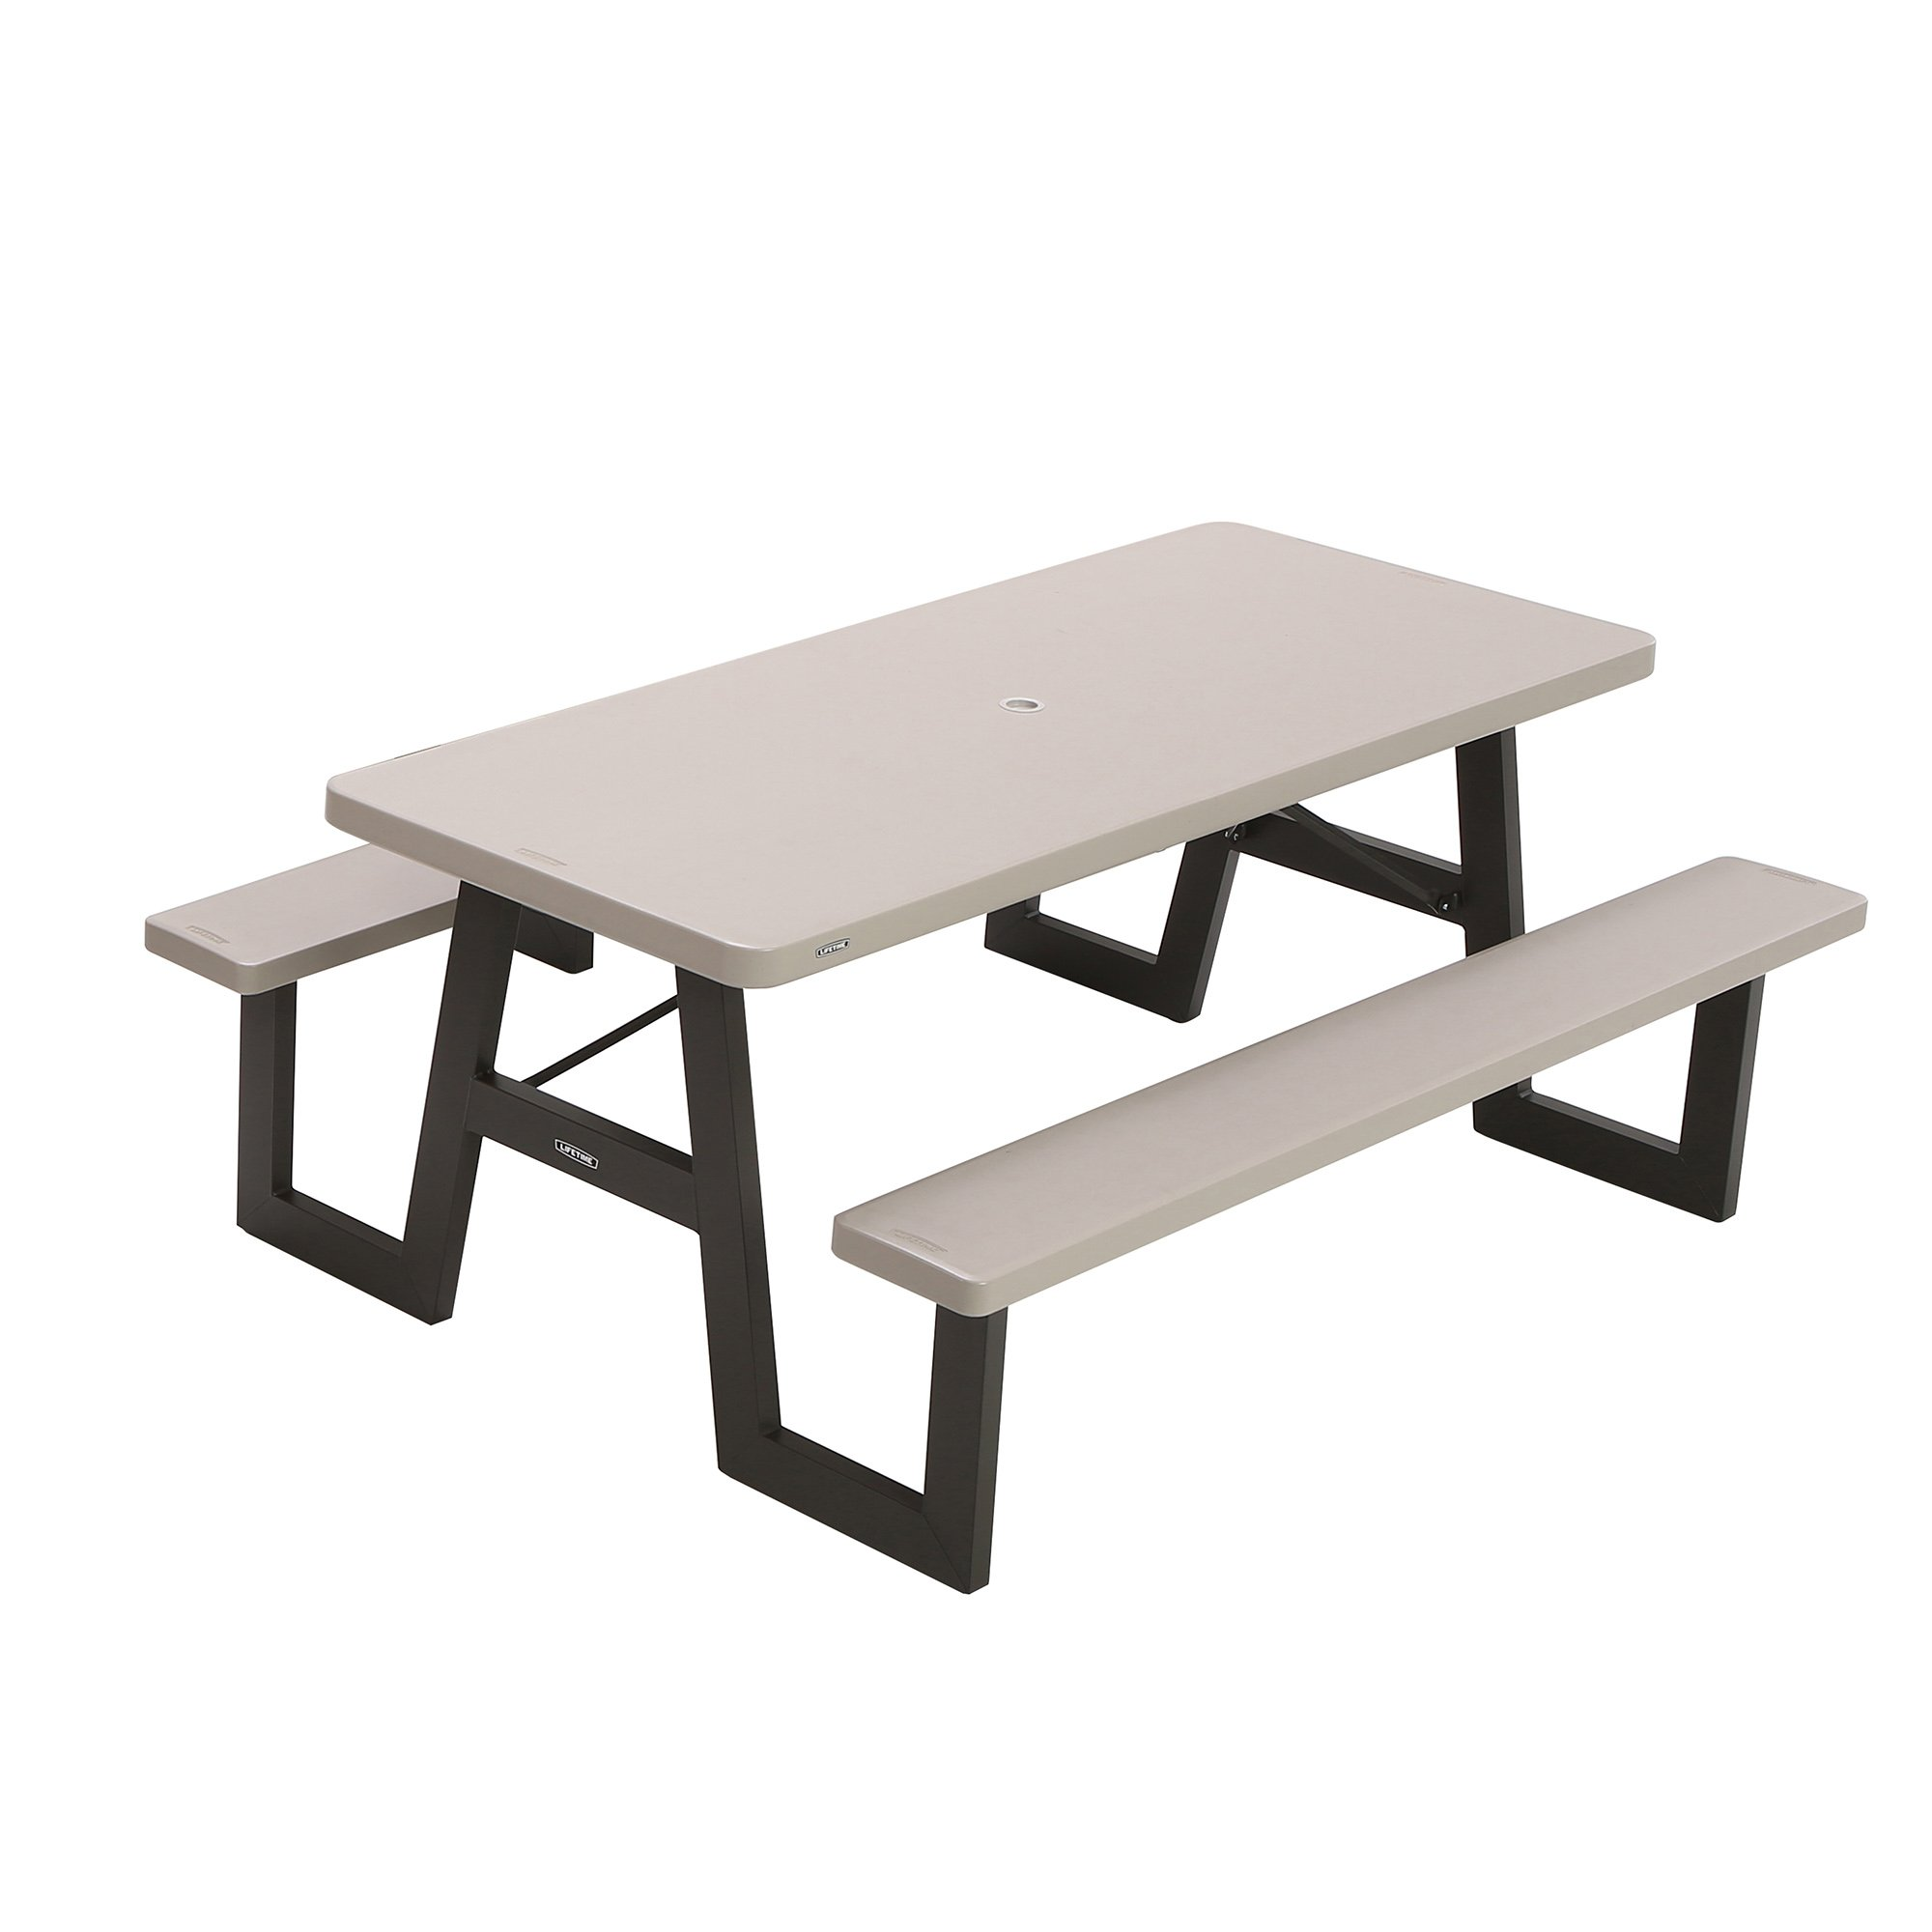 deco of amusing modern foldin contemporary ideal wooden small galleries decor tables lifetime stunning picnic plastic camping table coffee full square remarkable desk size uk cocktail x nz folding